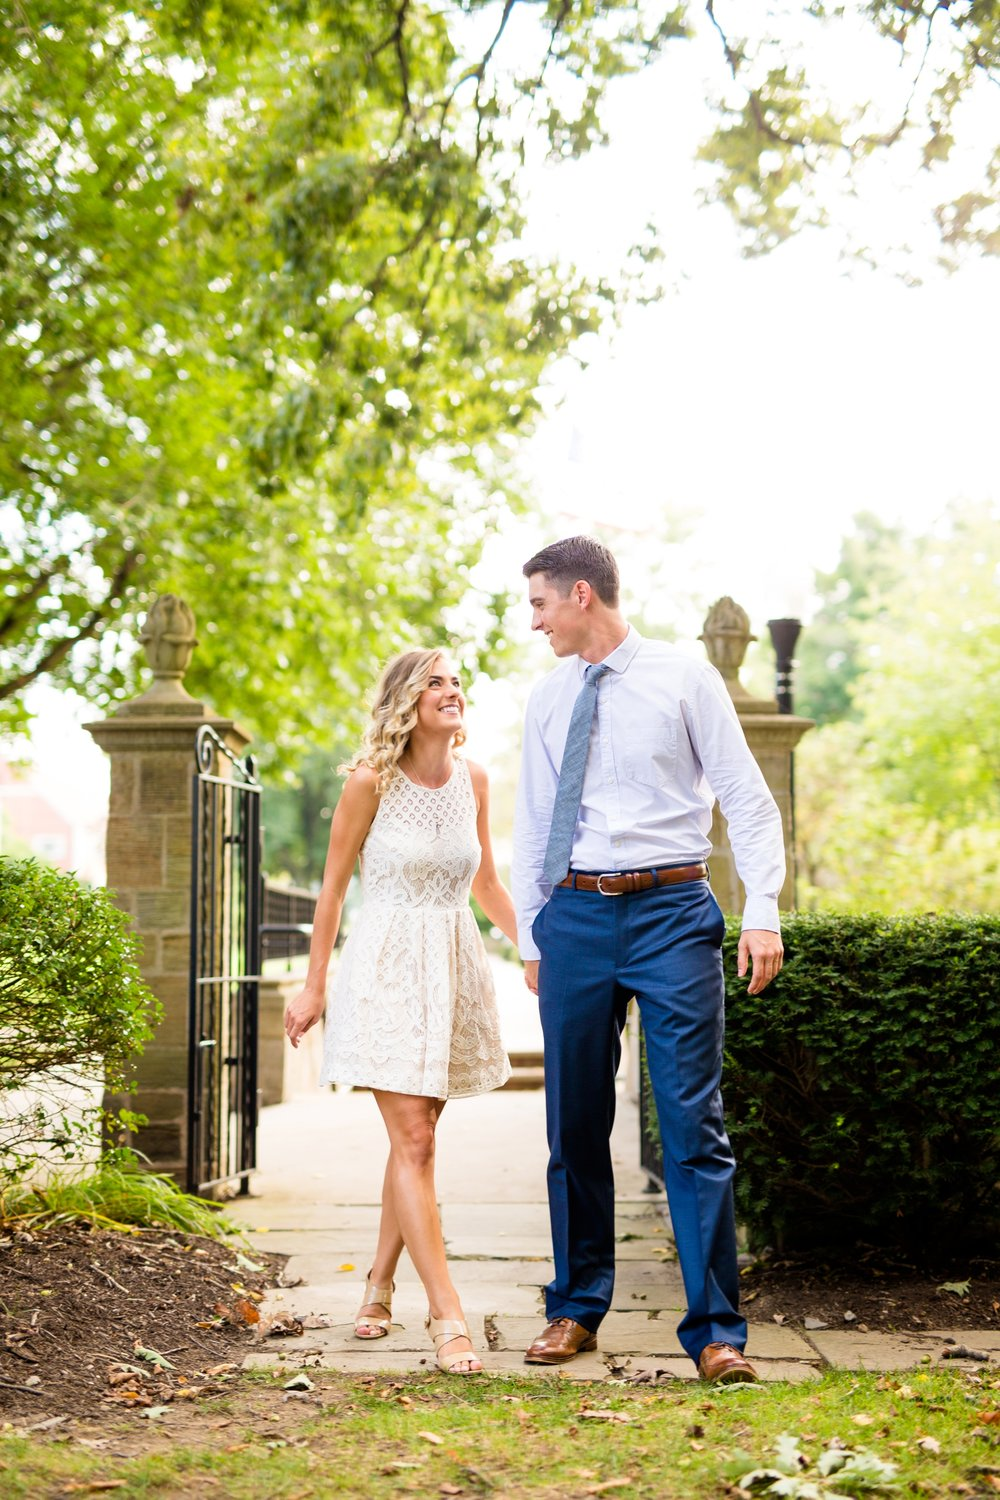 pittsburgh wedding photographer, pittsburgh wedding photographers, pittsburgh wedding venues, pittsburgh engagement photographer, cranberry township photographer, zelienople photographer